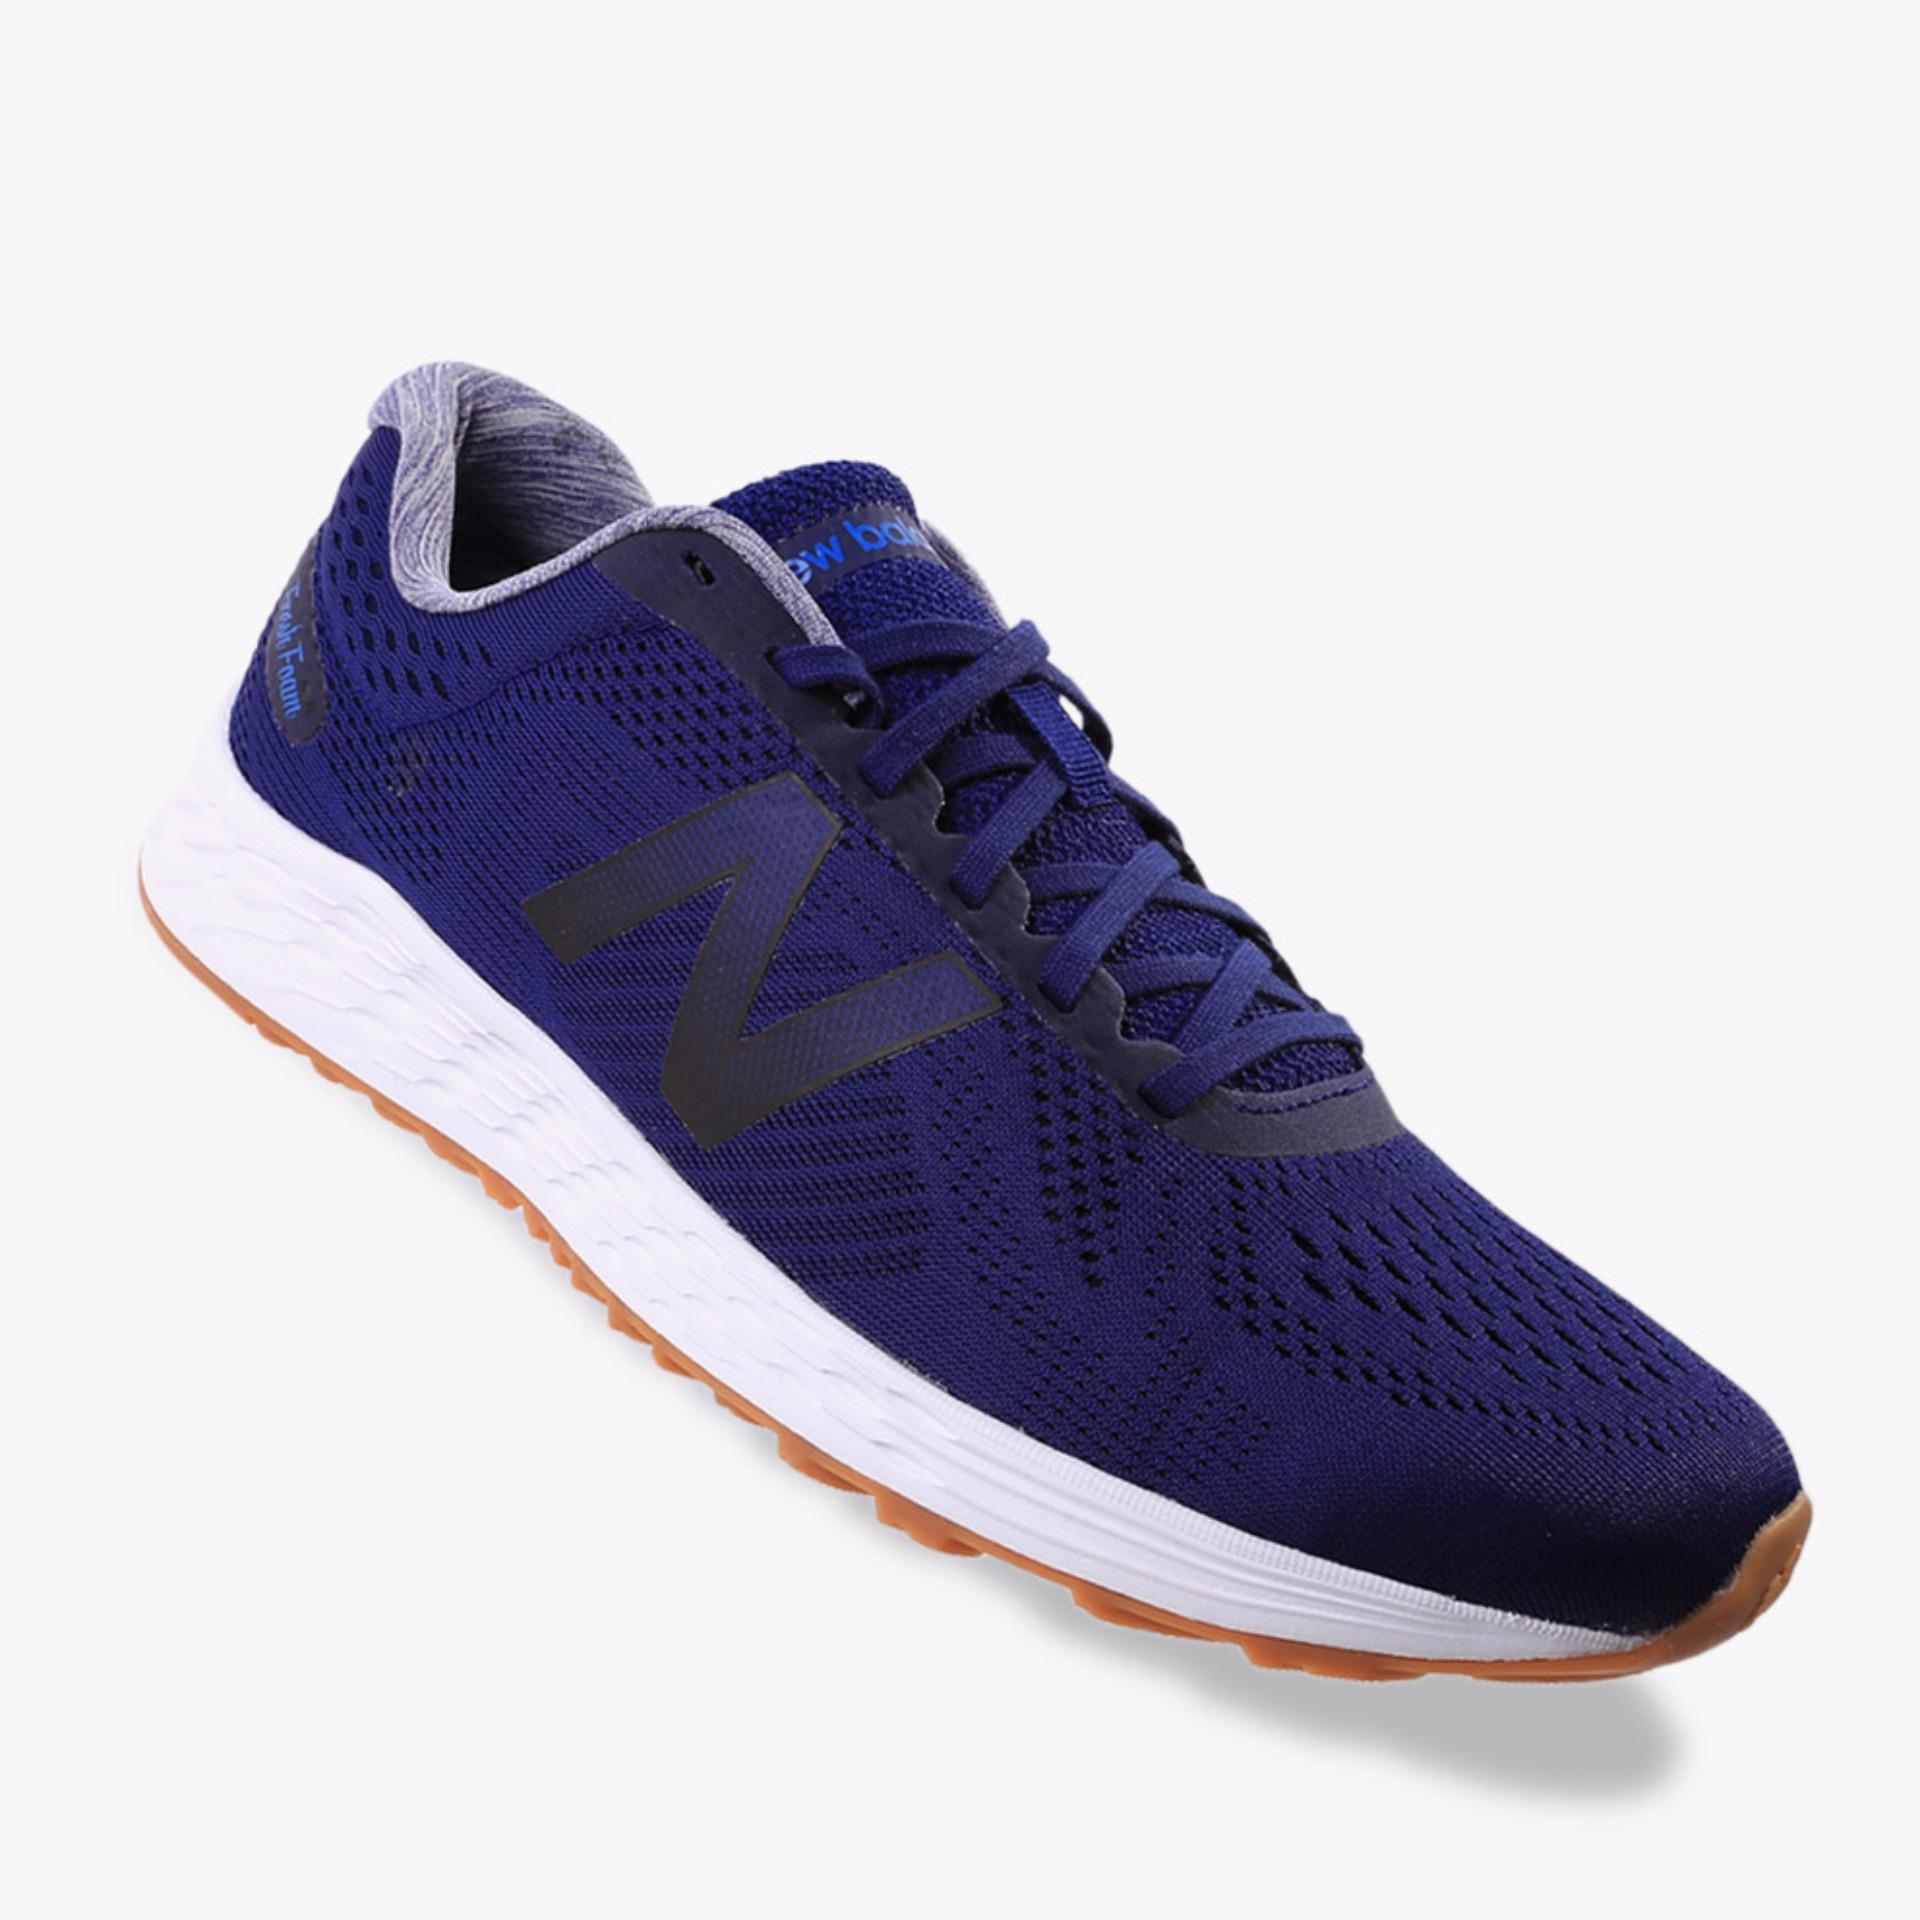 Jual New Balance Fresh Foam Arishi Men S Running Shoes Navy Online Di Indonesia